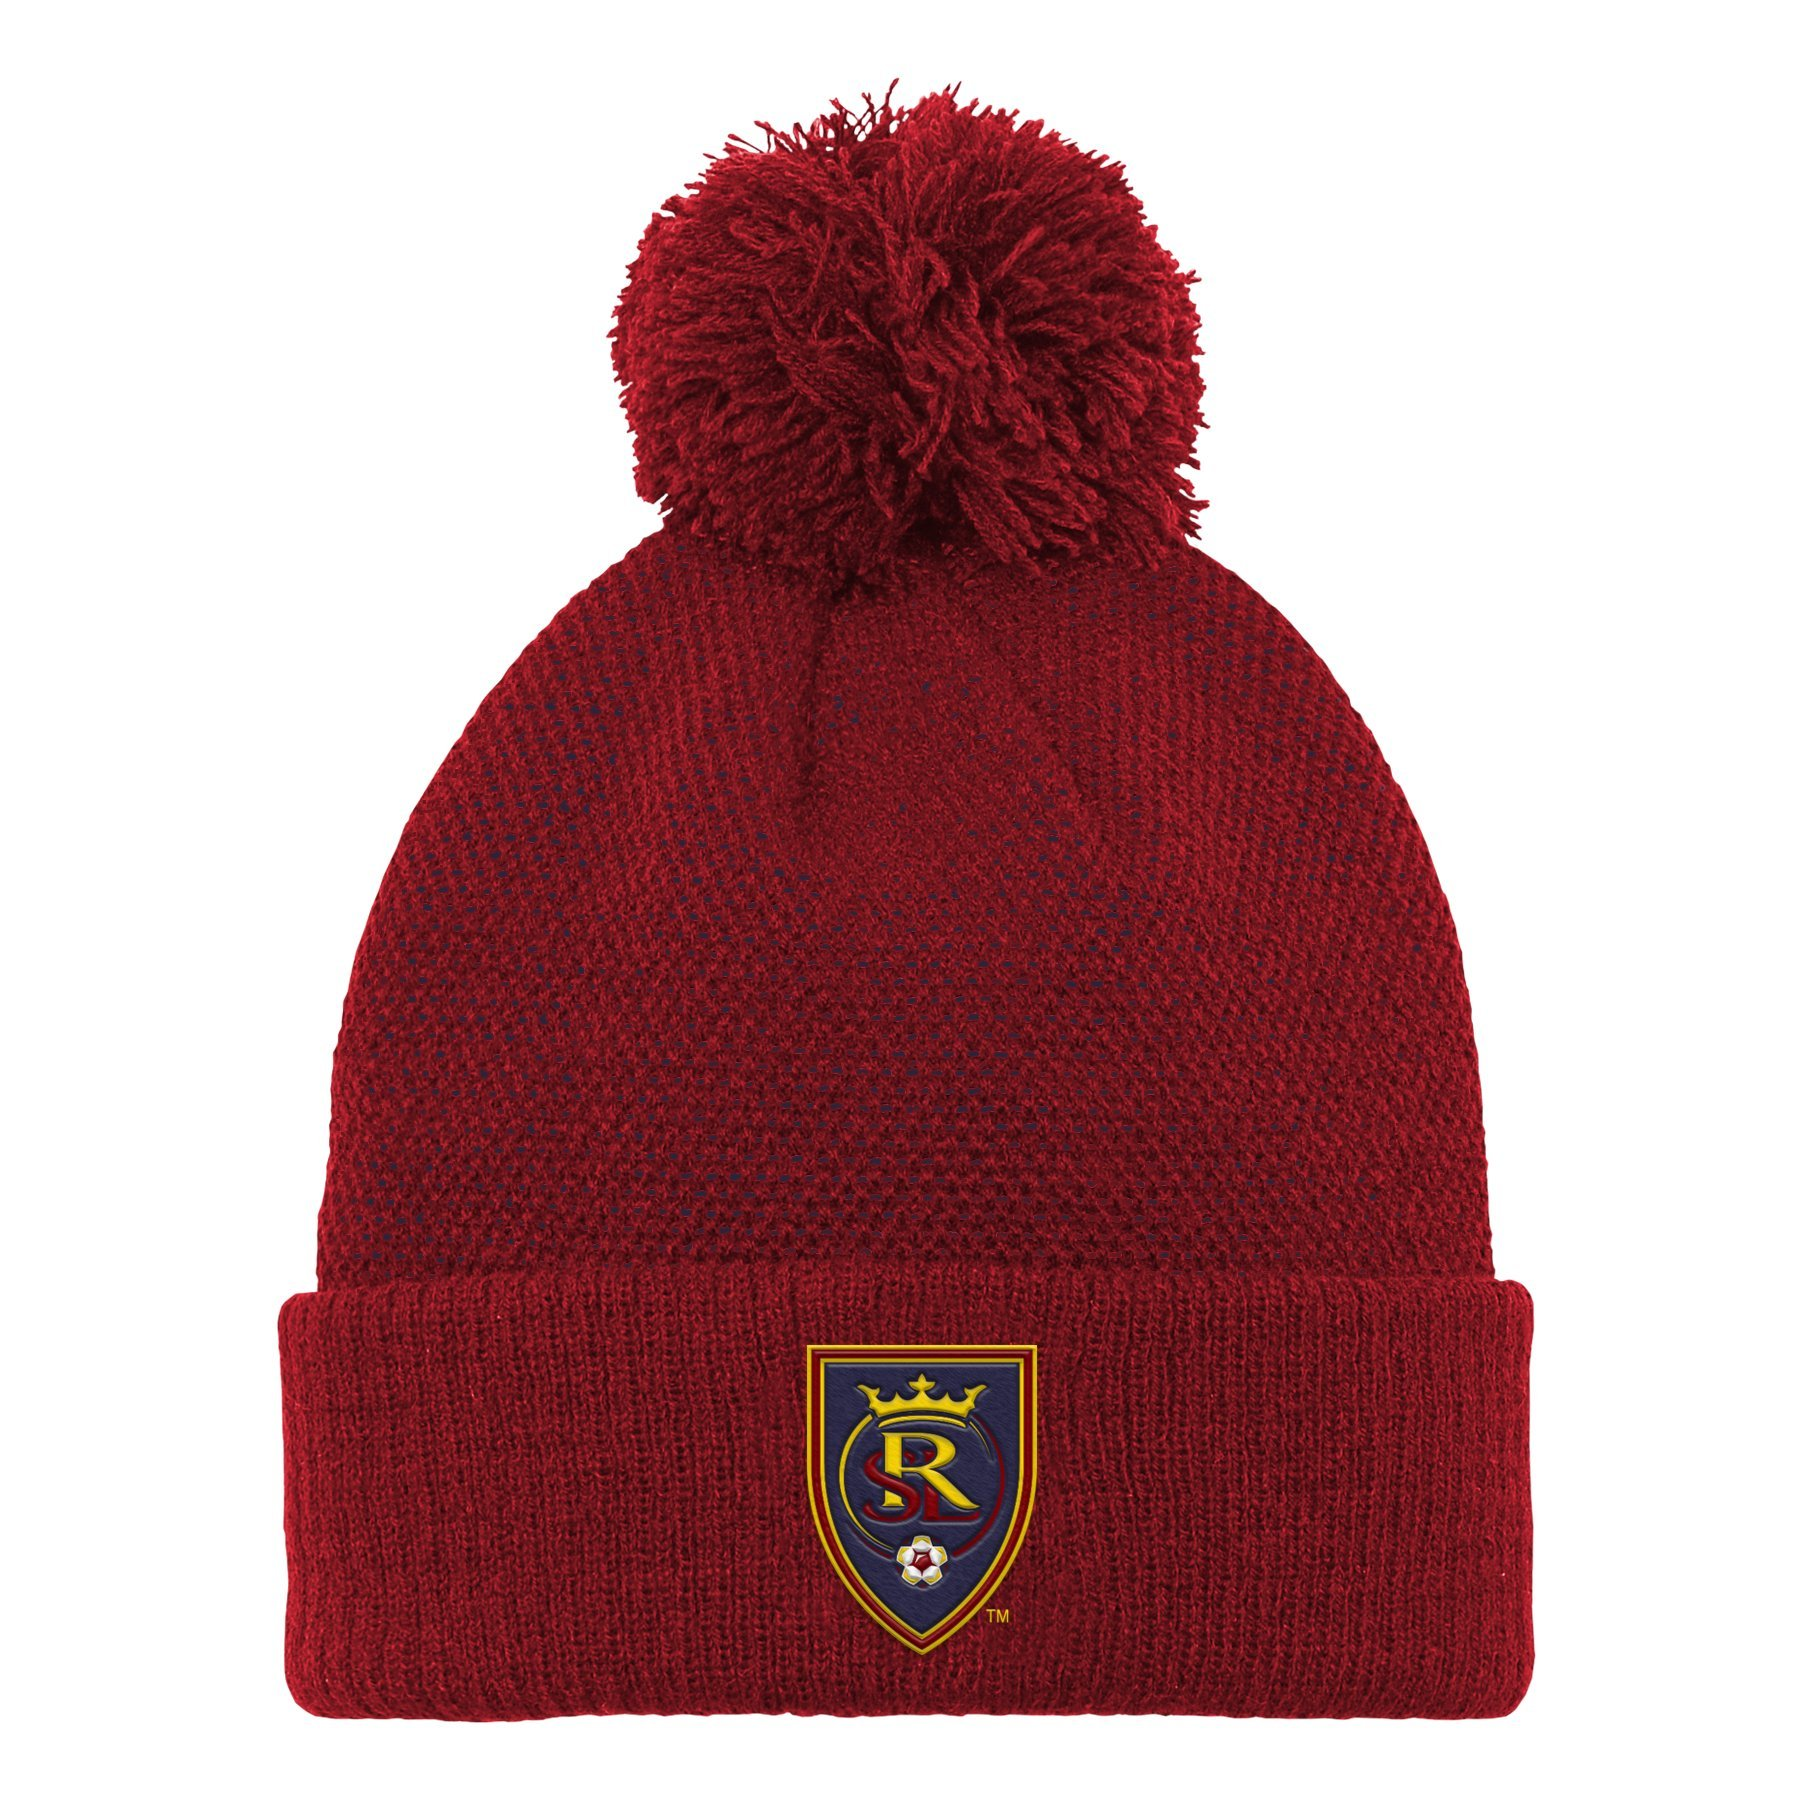 Outerstuff MLS Real Salt Lake Boys Cuffed Knit Hat with Pom, Crimson Red, One Size (8)